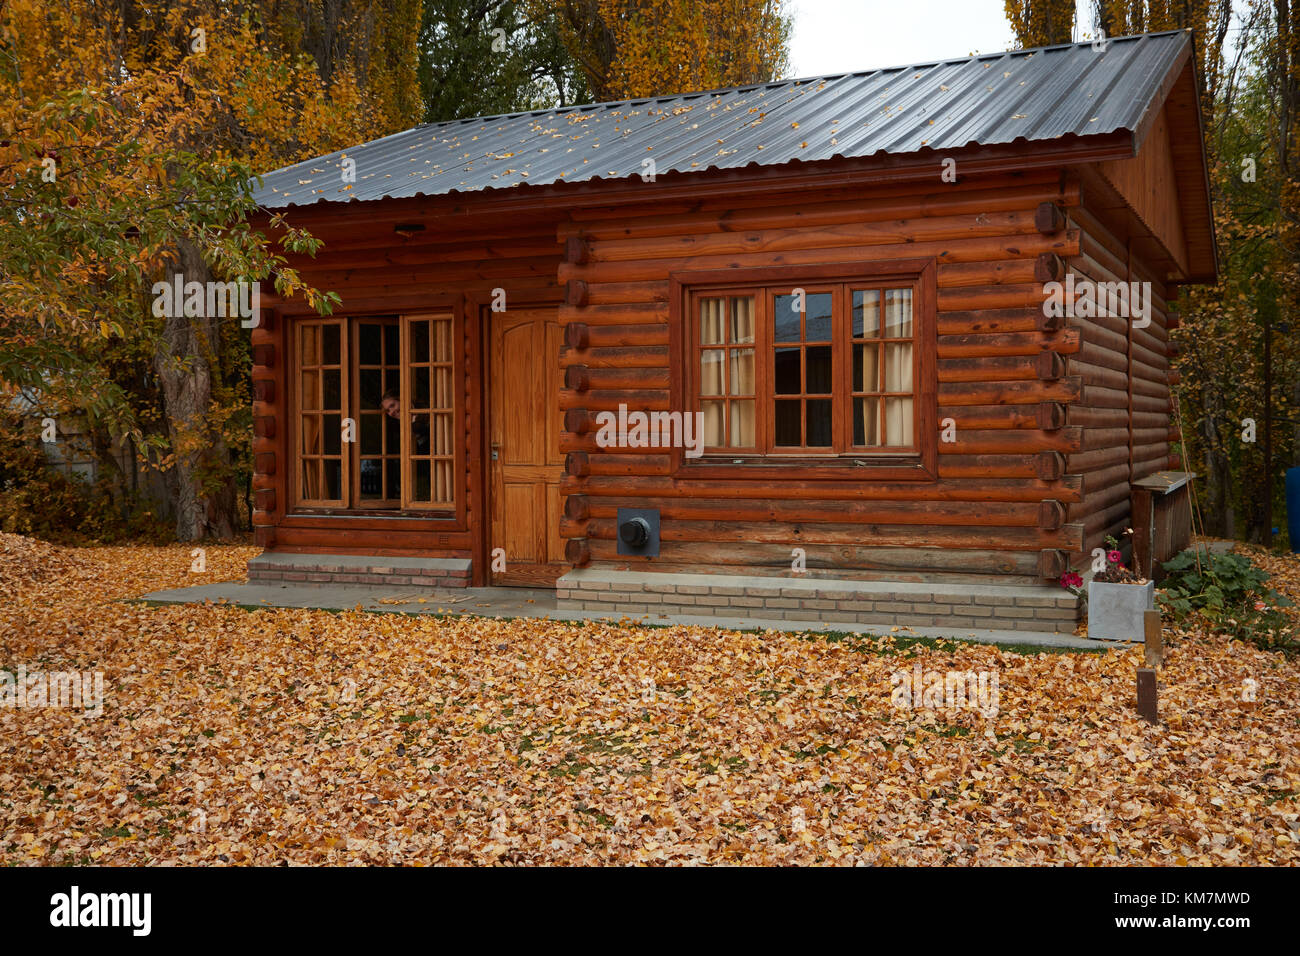 Log cabin and autumn leaves, El Calafate, Patagonia, Argentina, South America - Stock Image